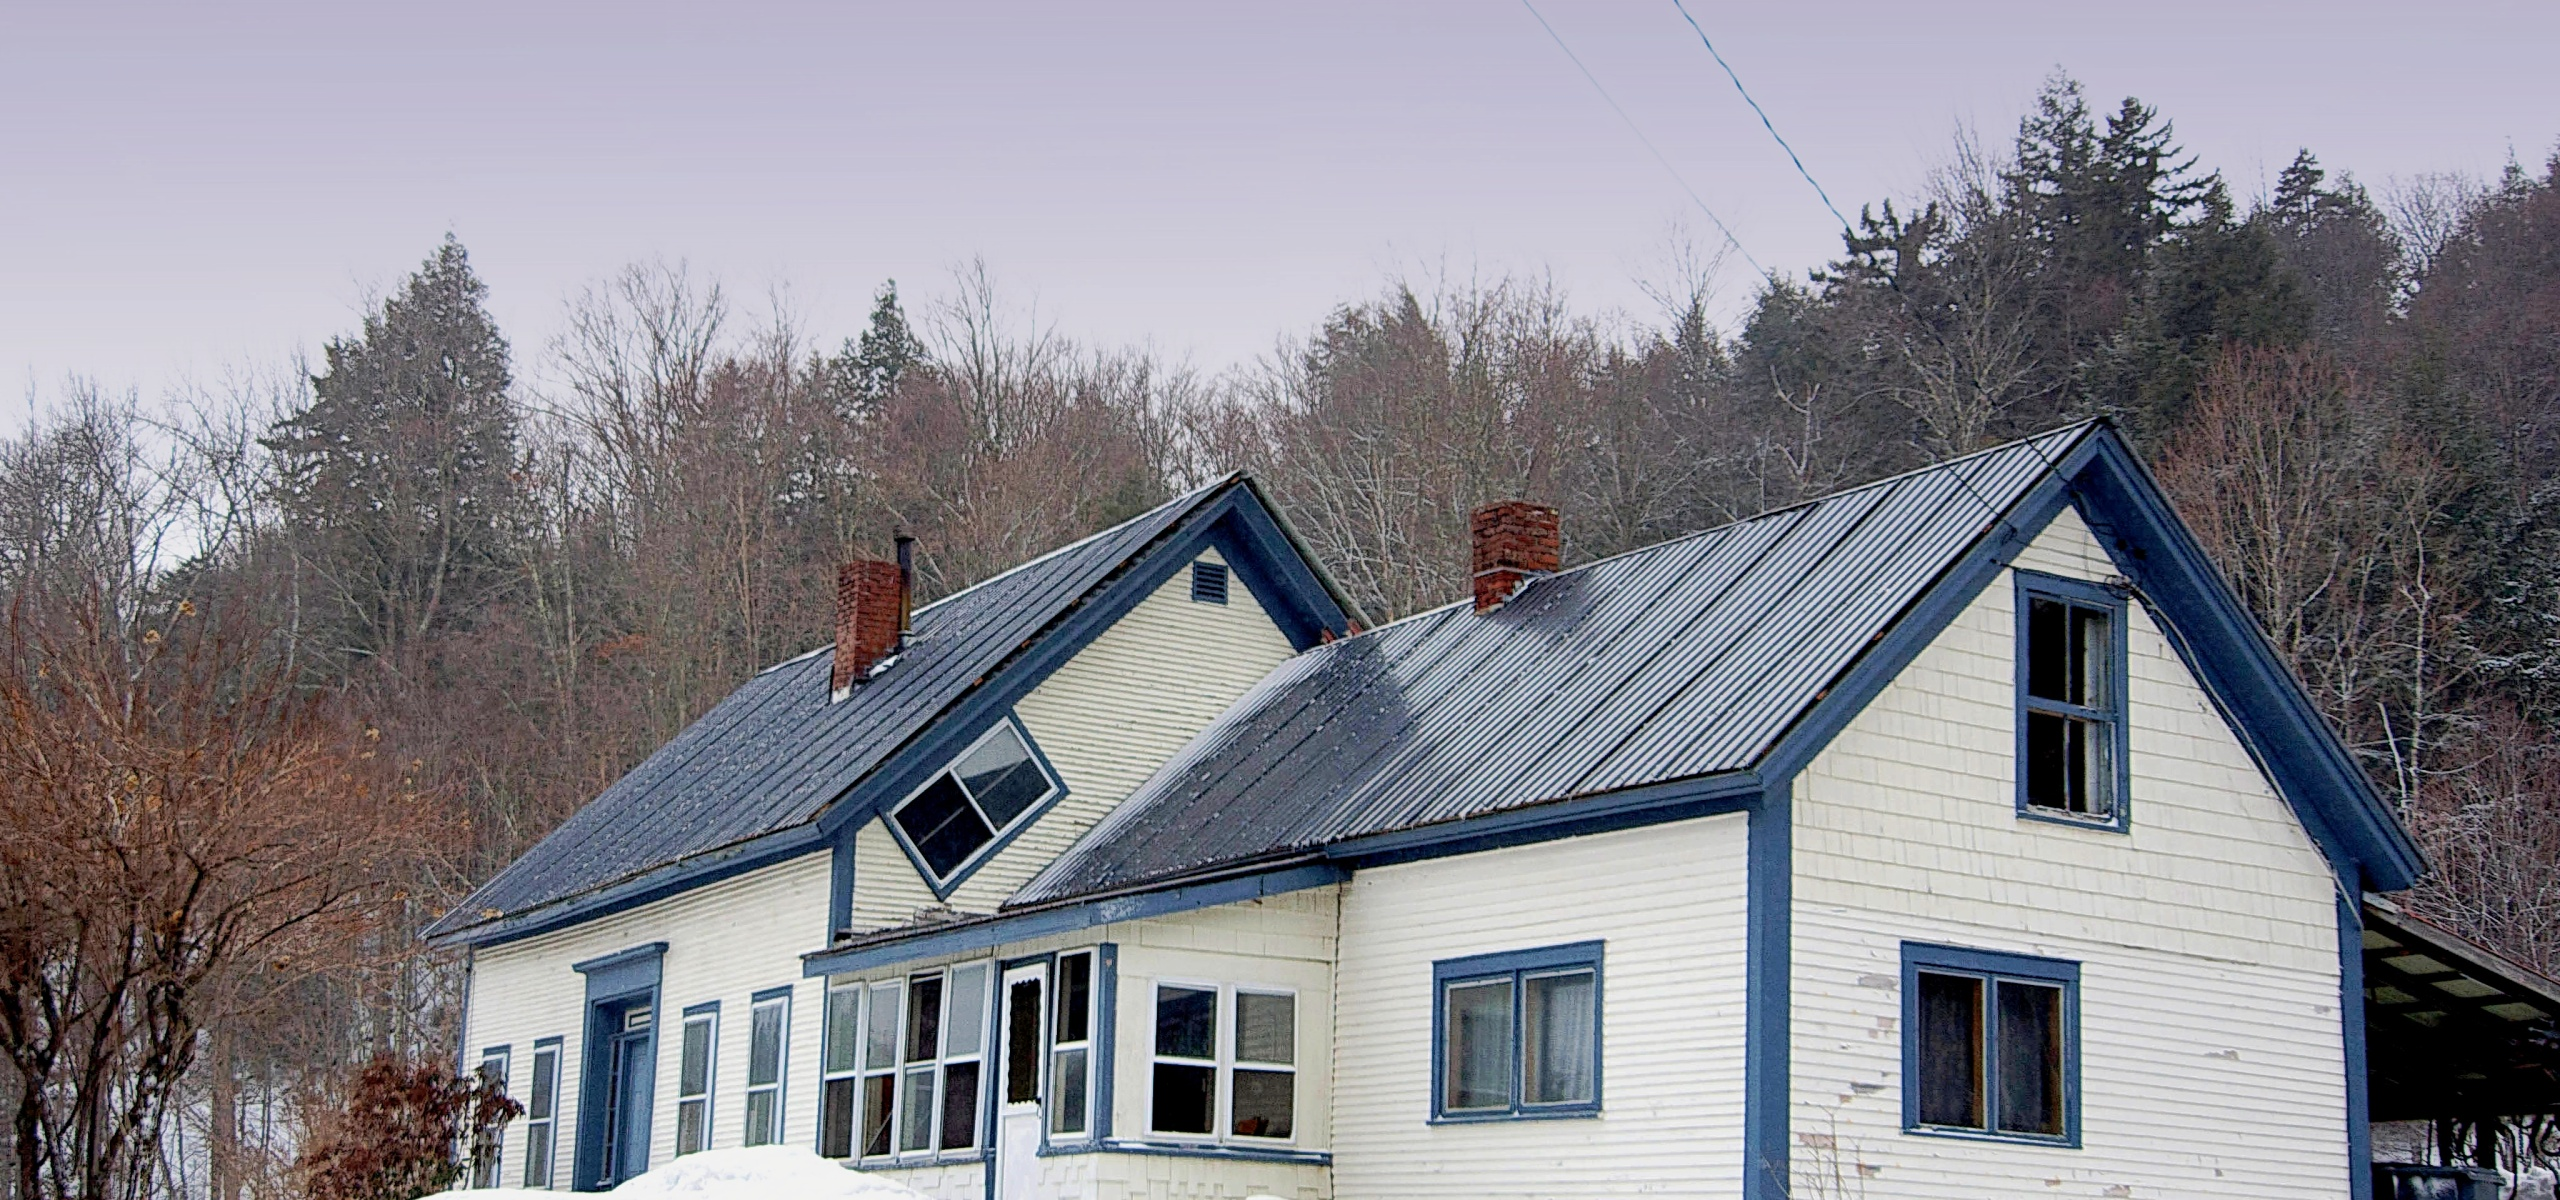 One Of My Favorite Pieces Obscure Vermont Is A Mixture Architectural Vernacular And Good Old Fashioned Yankee Ingenuity